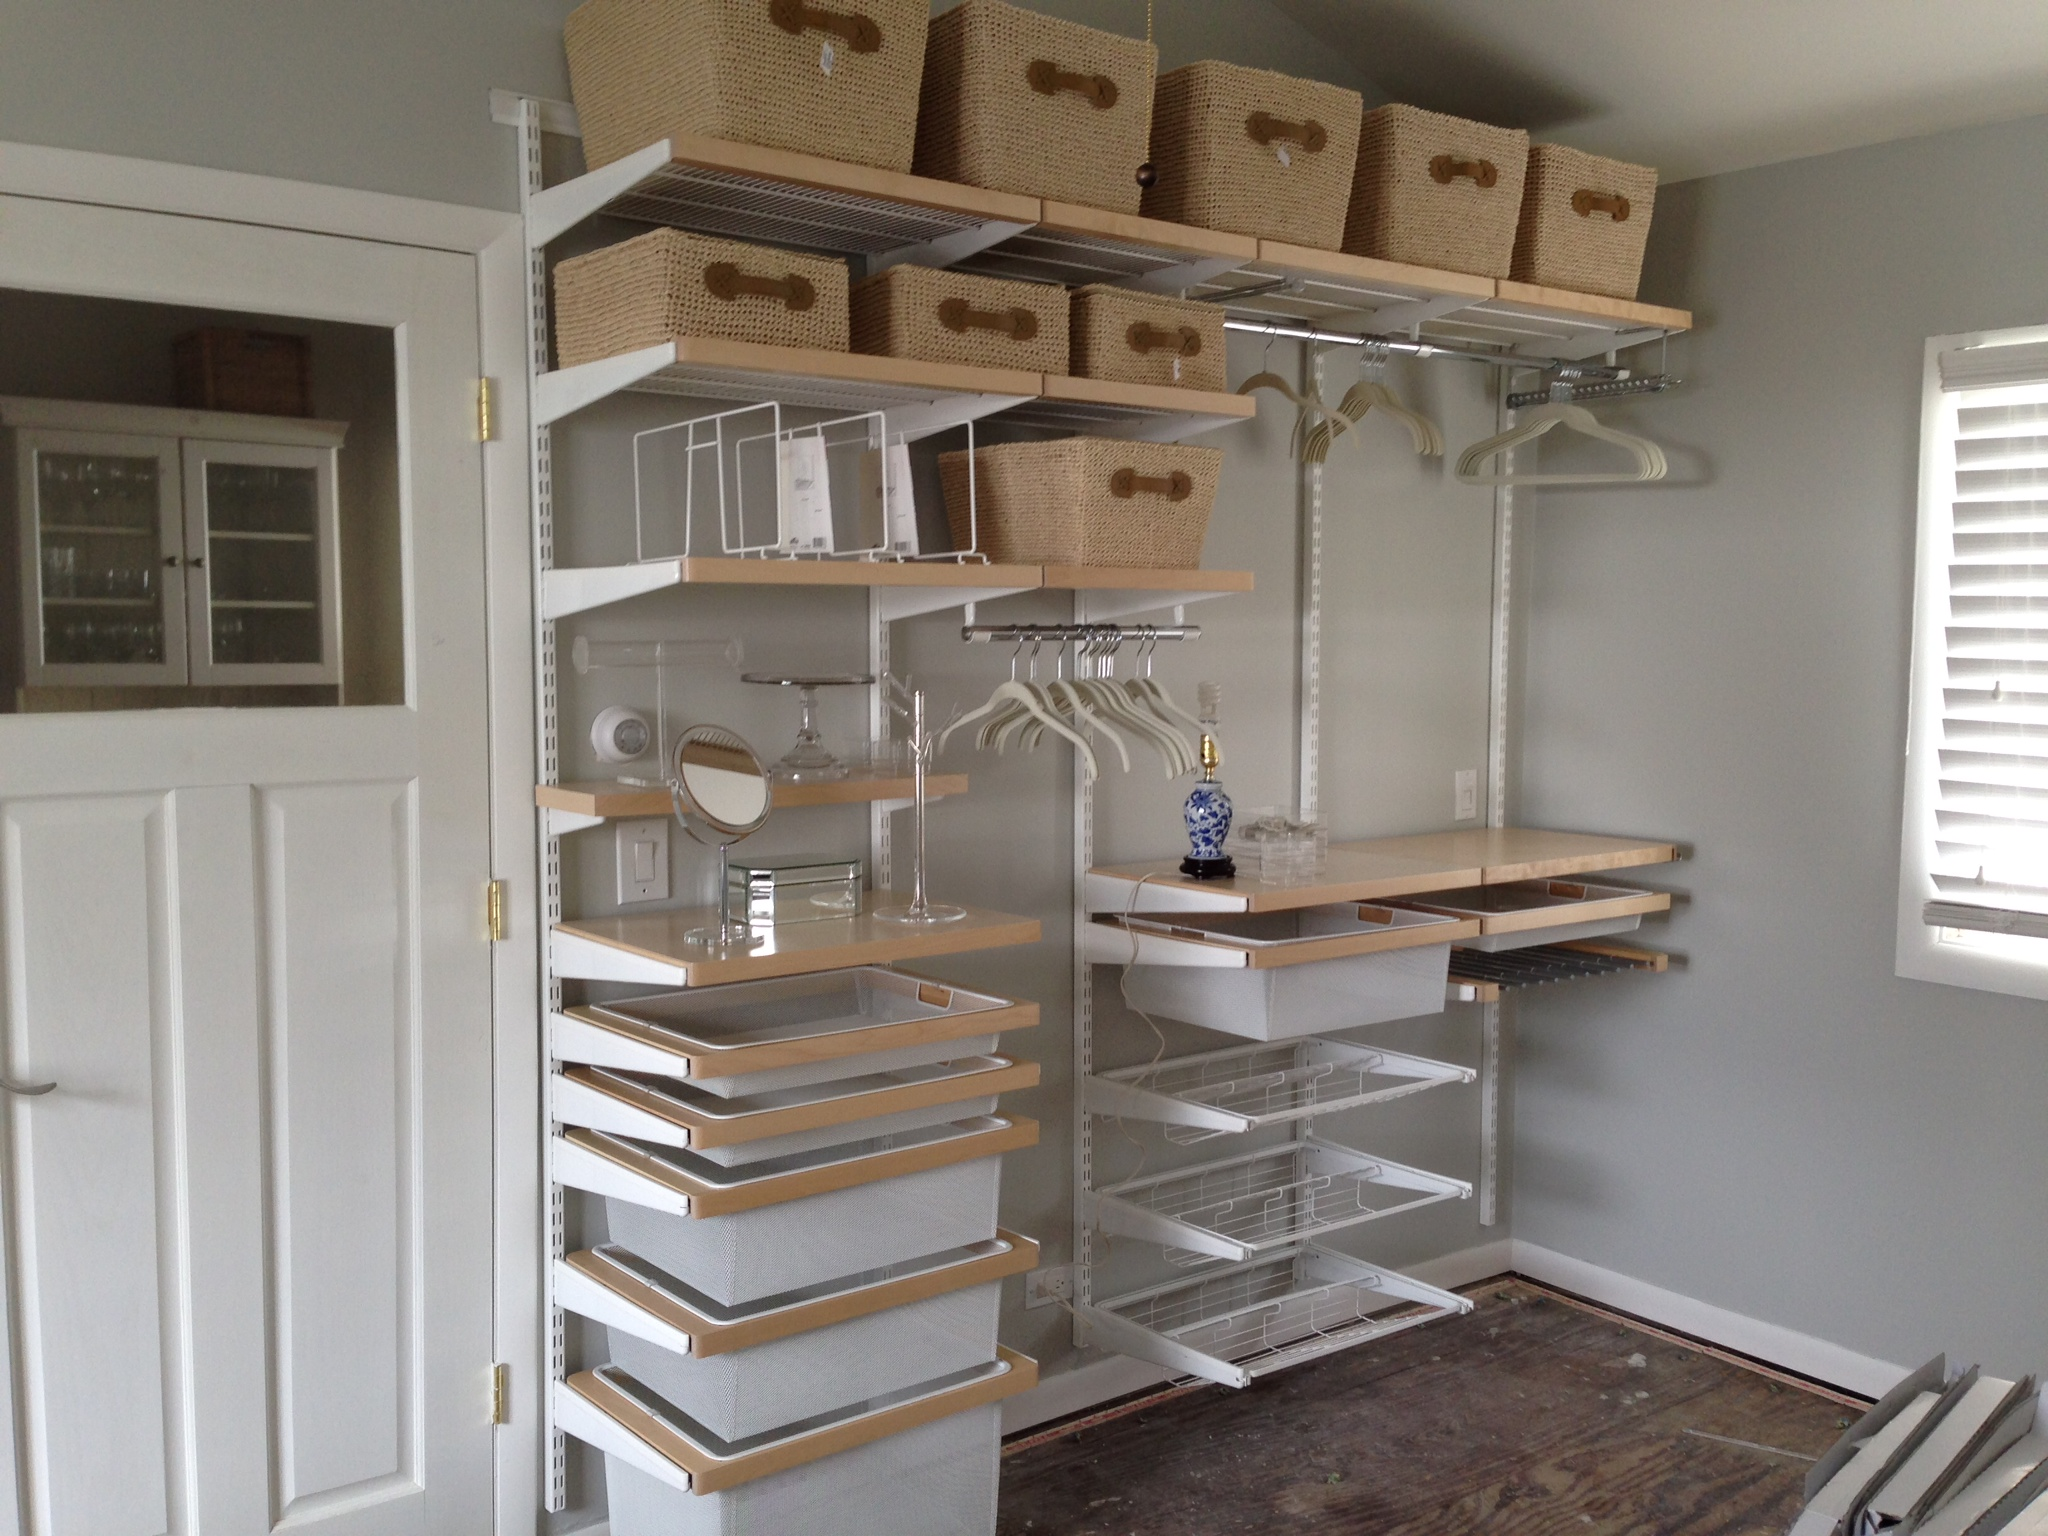 Elfa Storage System Organizing With Elfa In The Bedroom Megan Opel Interiors